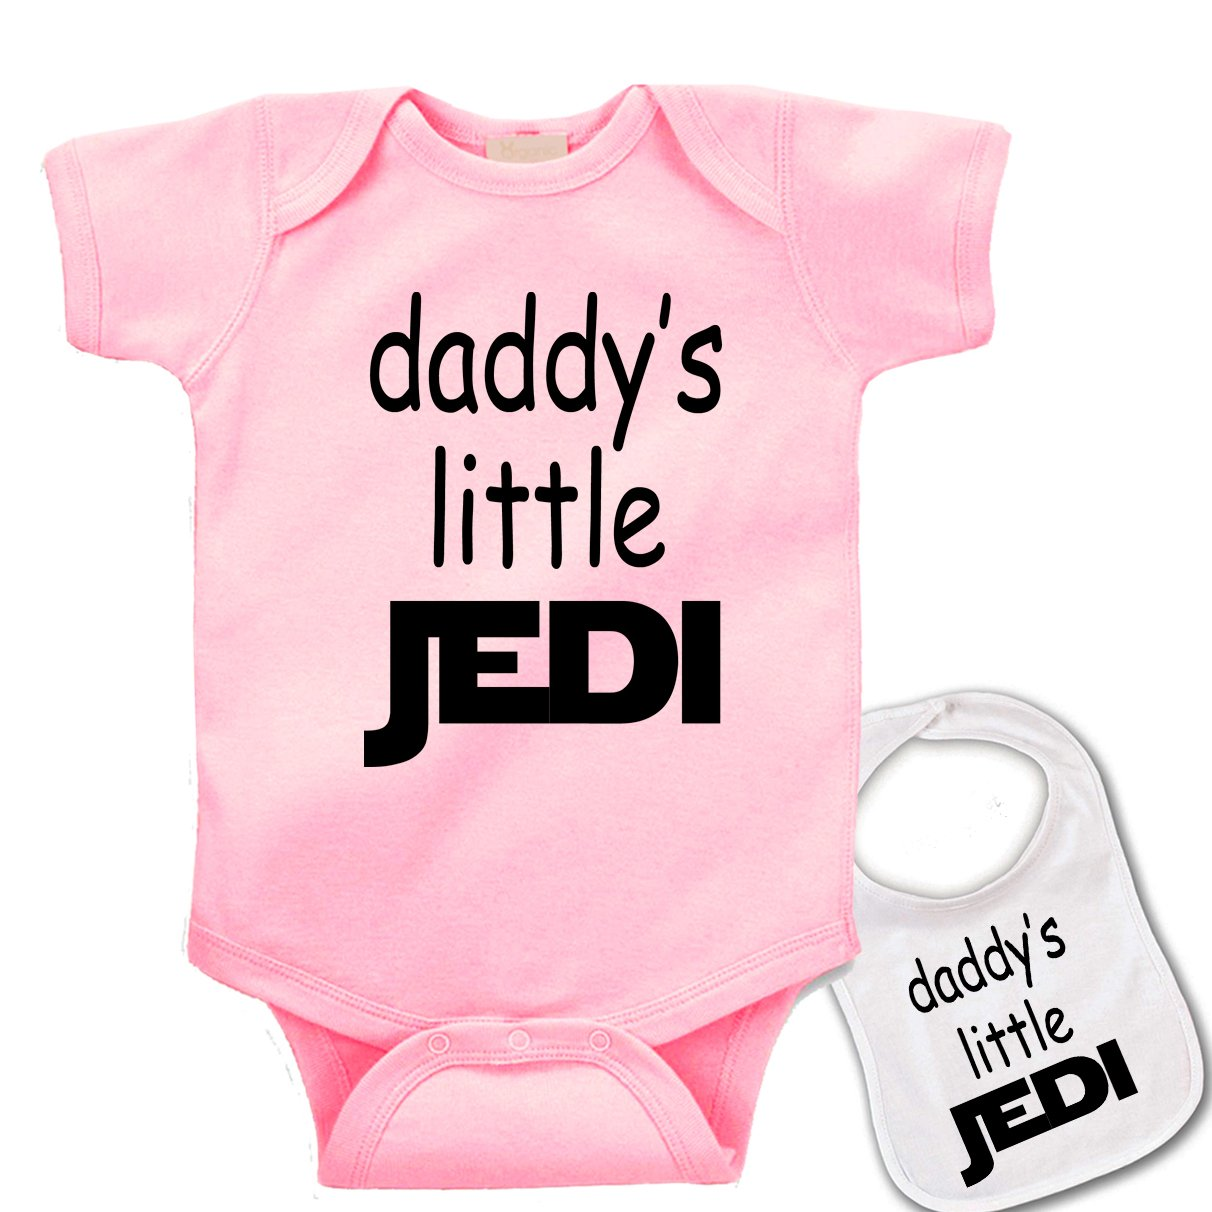 Daddys Little Jedi  Custom Star Wars Baby bodysuit onesie & Matching bib Set 772u